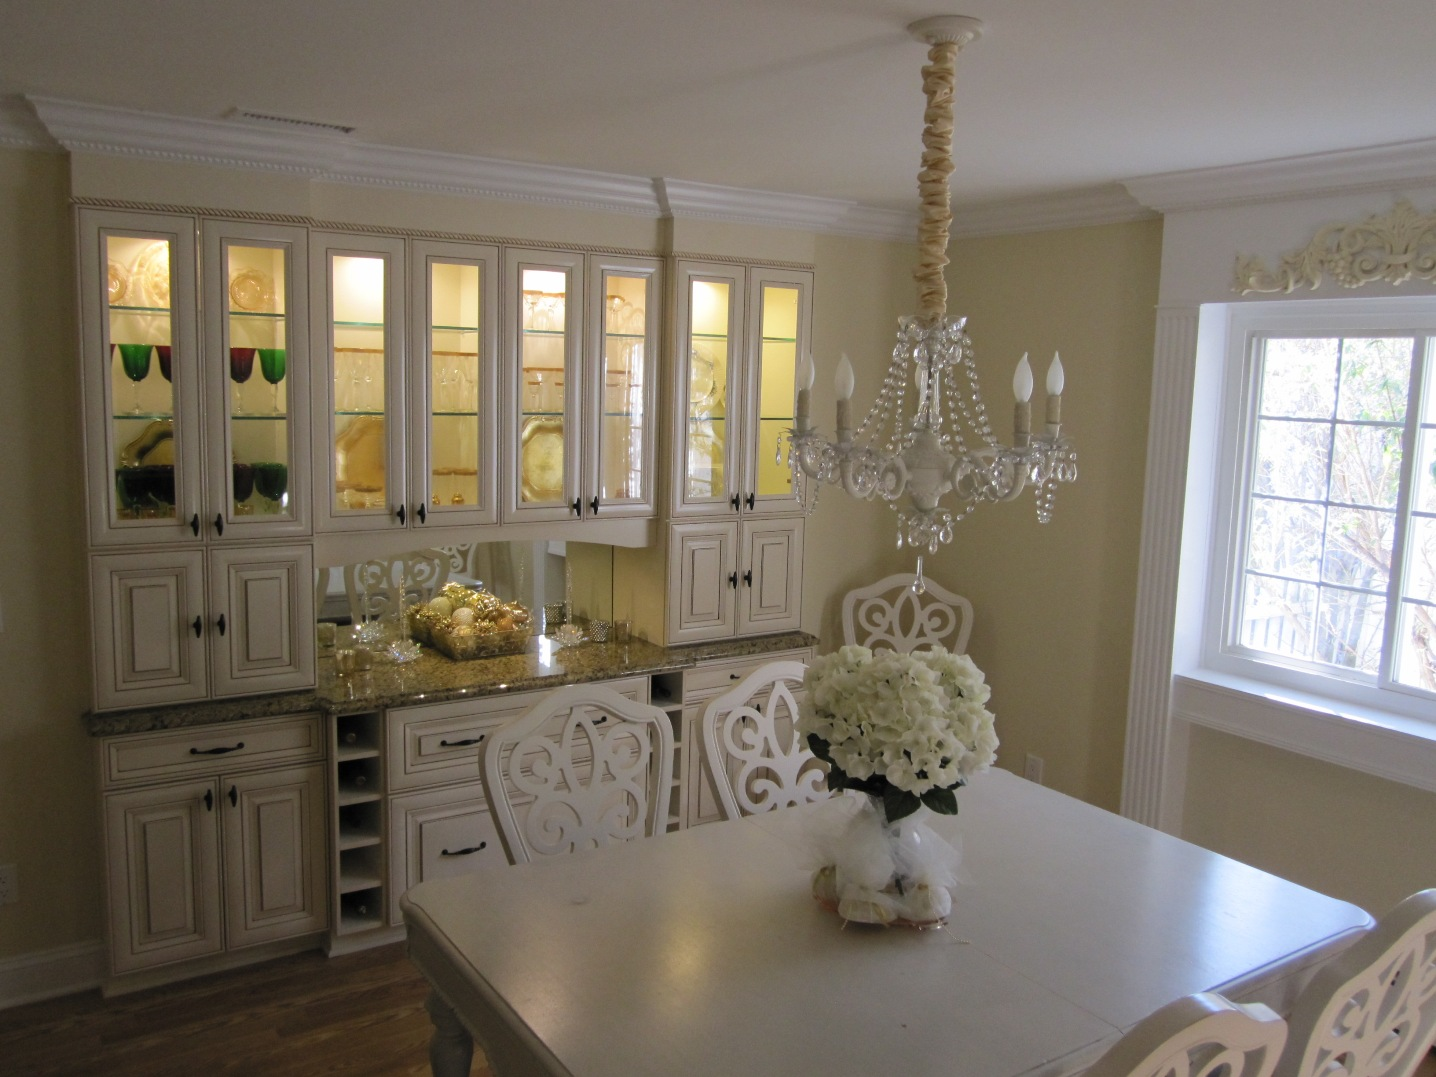 Dining room cabinets a necessity for organized elegant for Elegant dining rooms